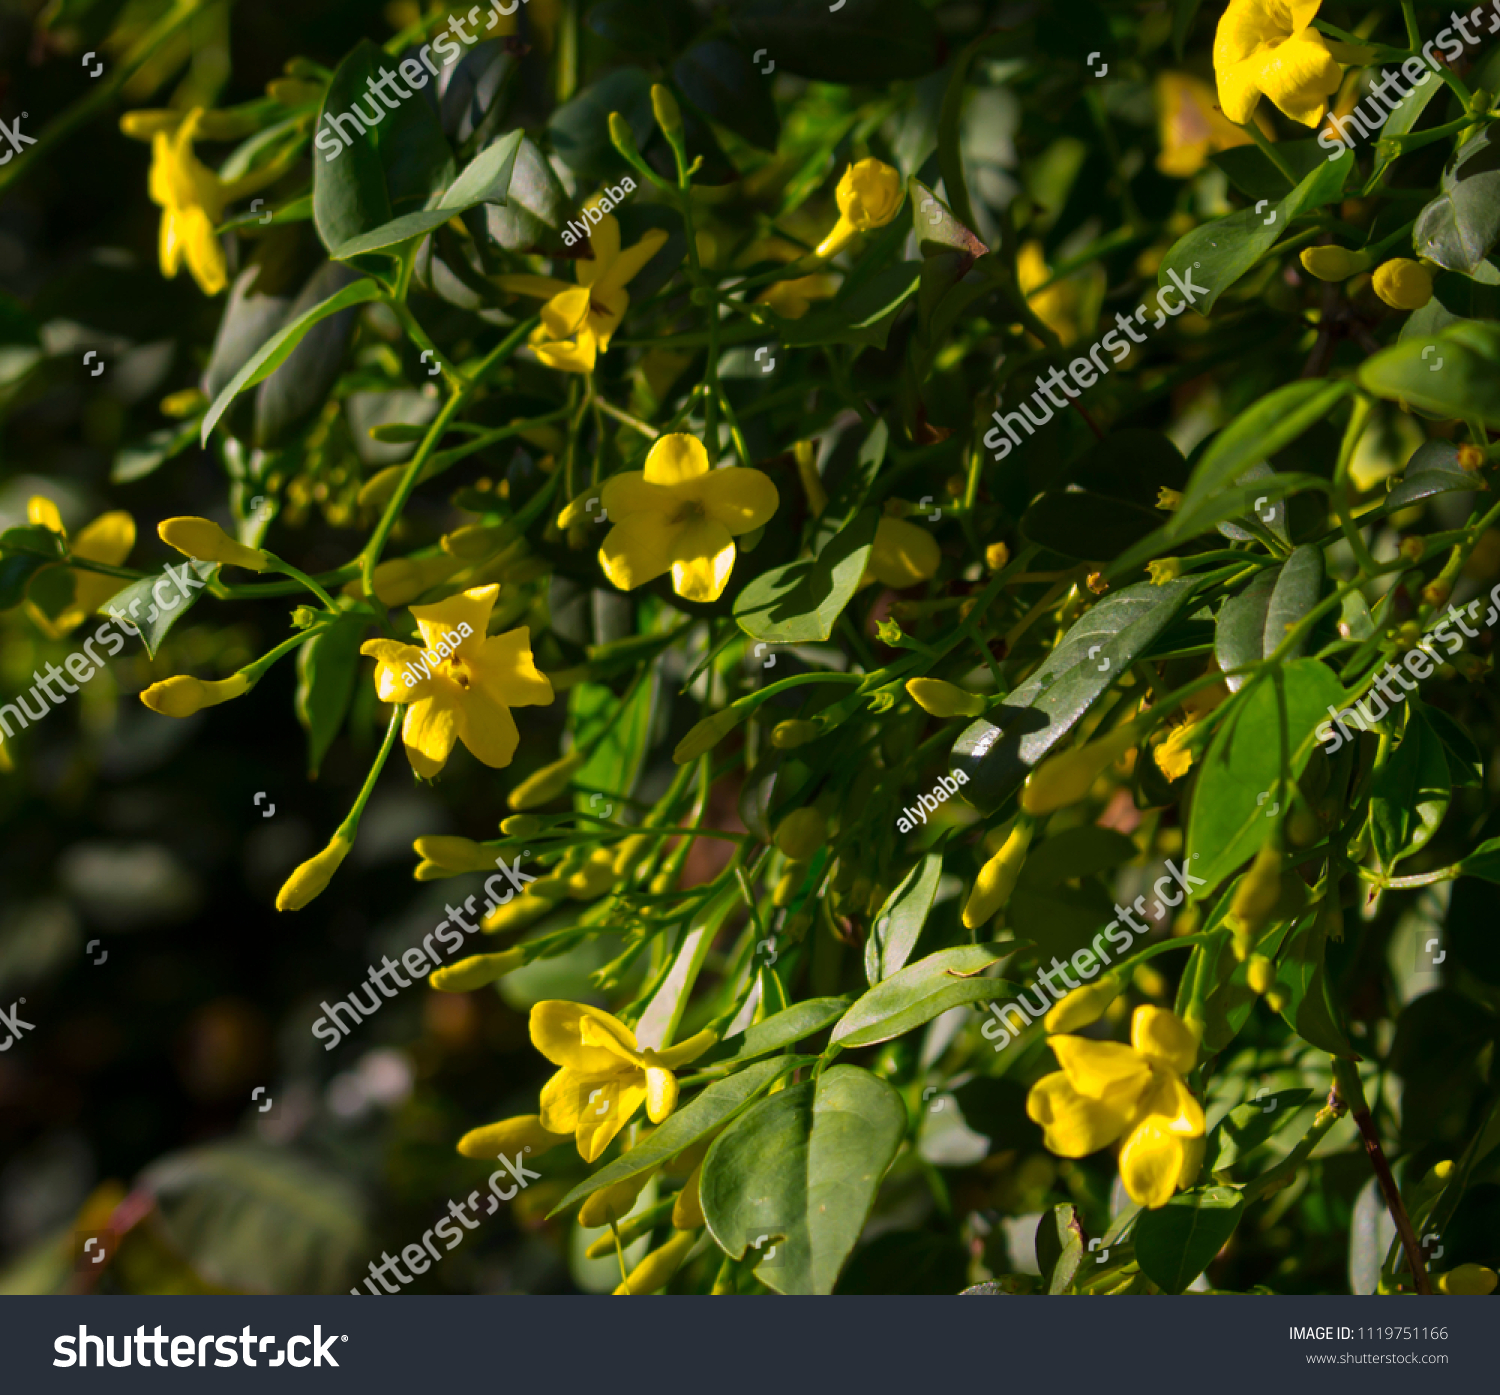 Fragrant buttercup yellow flowers carolina jasmine stock photo edit fragrant buttercup yellow flowers of carolina jasmine contrasted against shiny green foliage burst into fragrant bloom izmirmasajfo